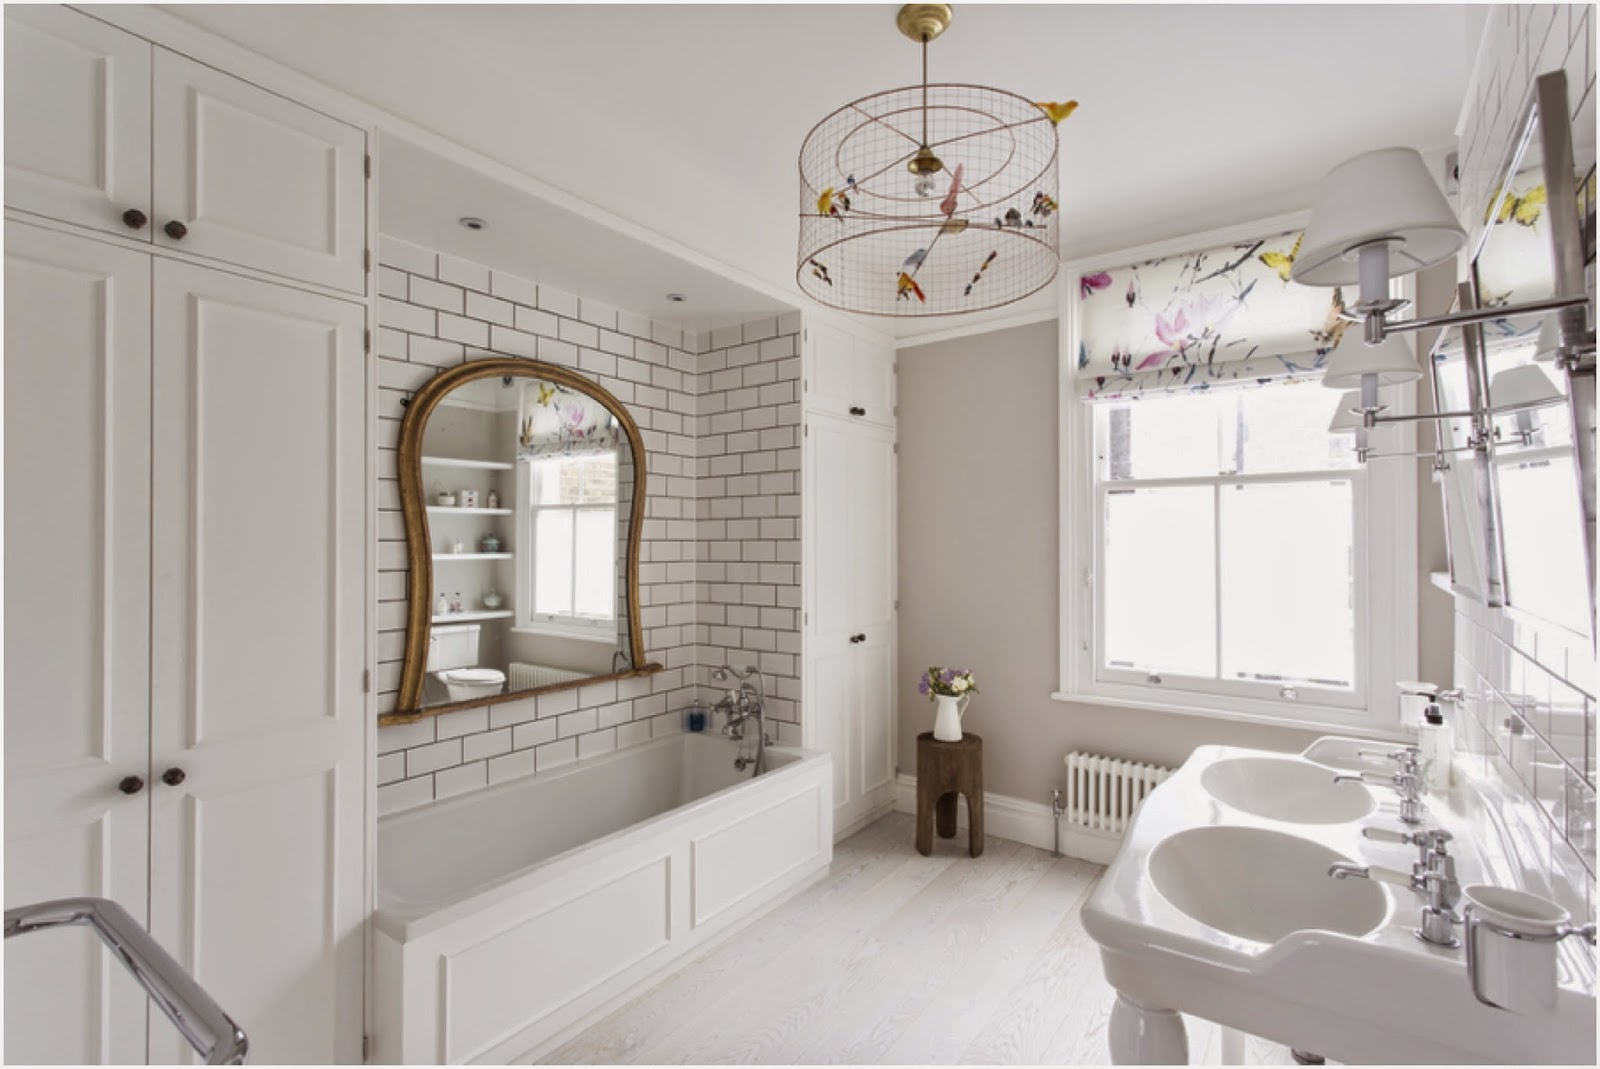 Master bathroom victorian terrace in london laura for Bedroom ideas victorian terrace